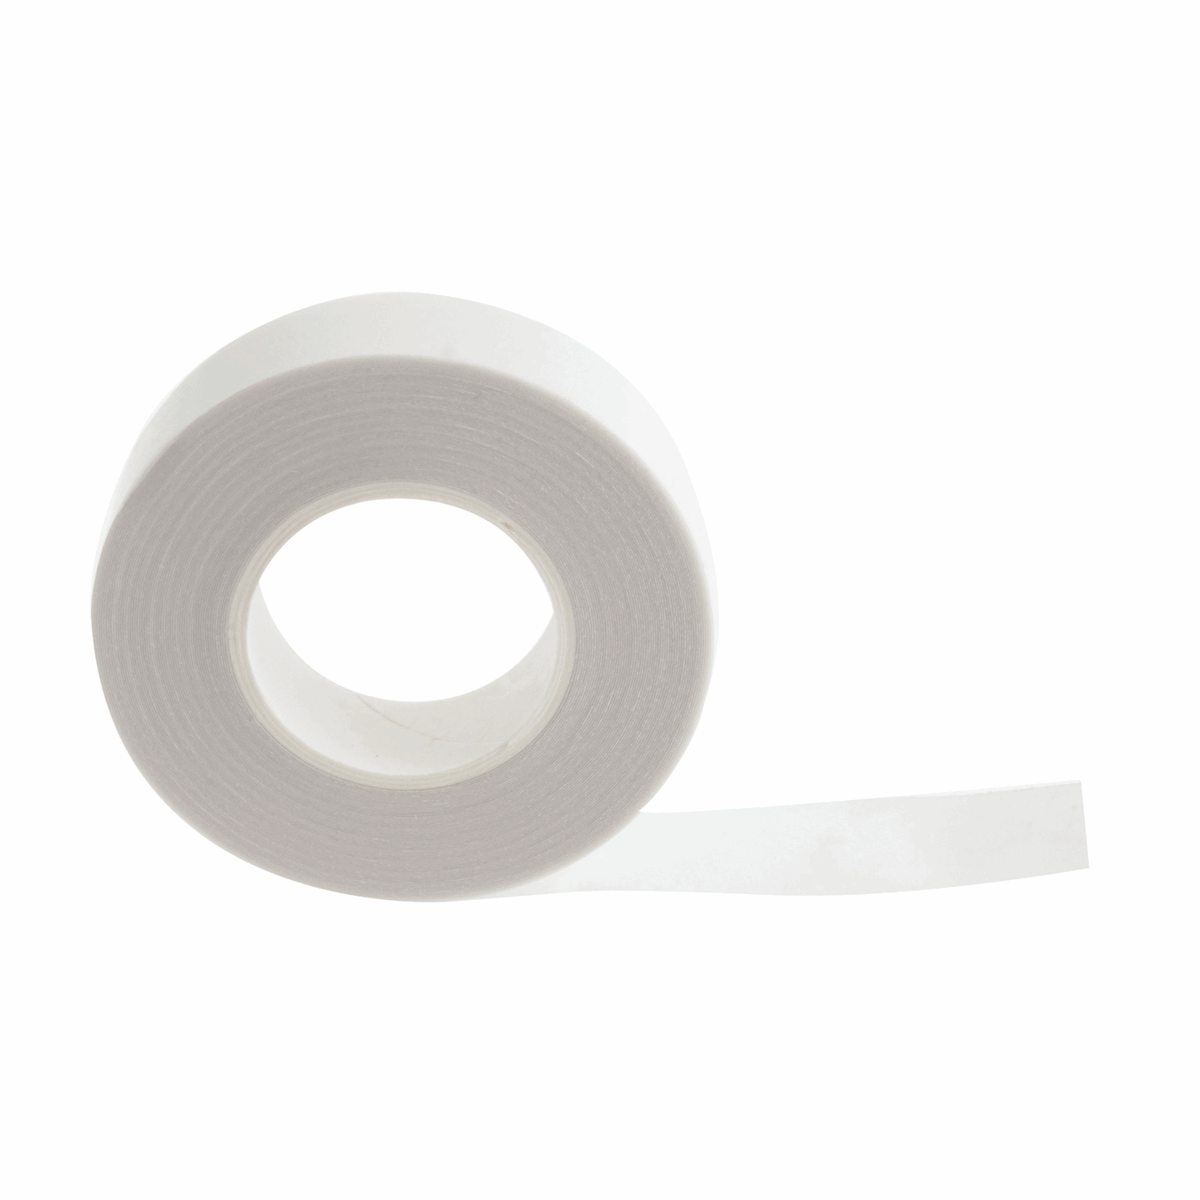 Clover Double Sided Basting Tape, 12mm x 7m